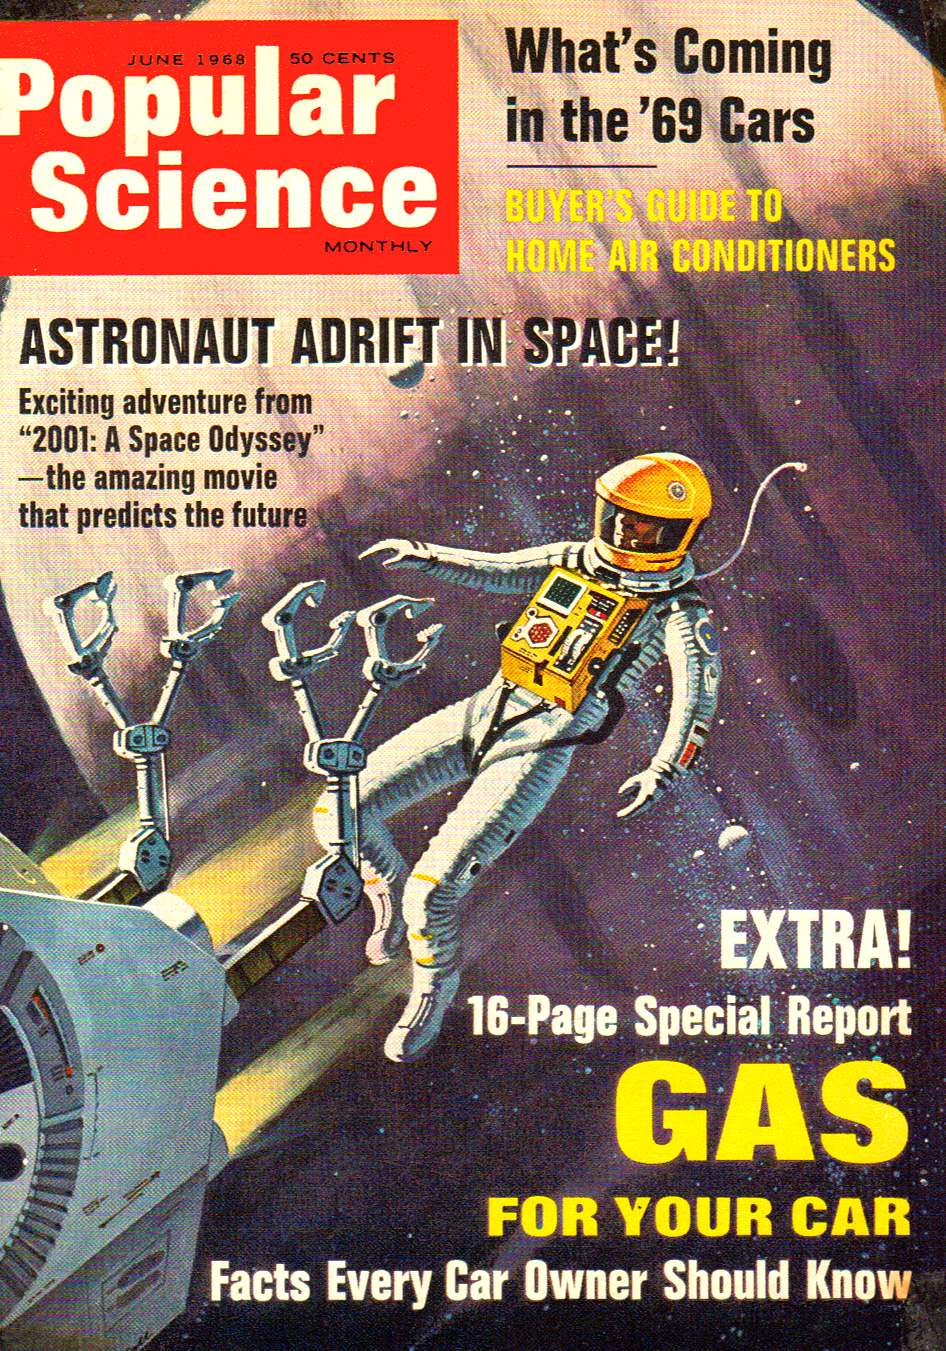 RG Cameron Jan 3rd Illo #1 Popular Science Cover